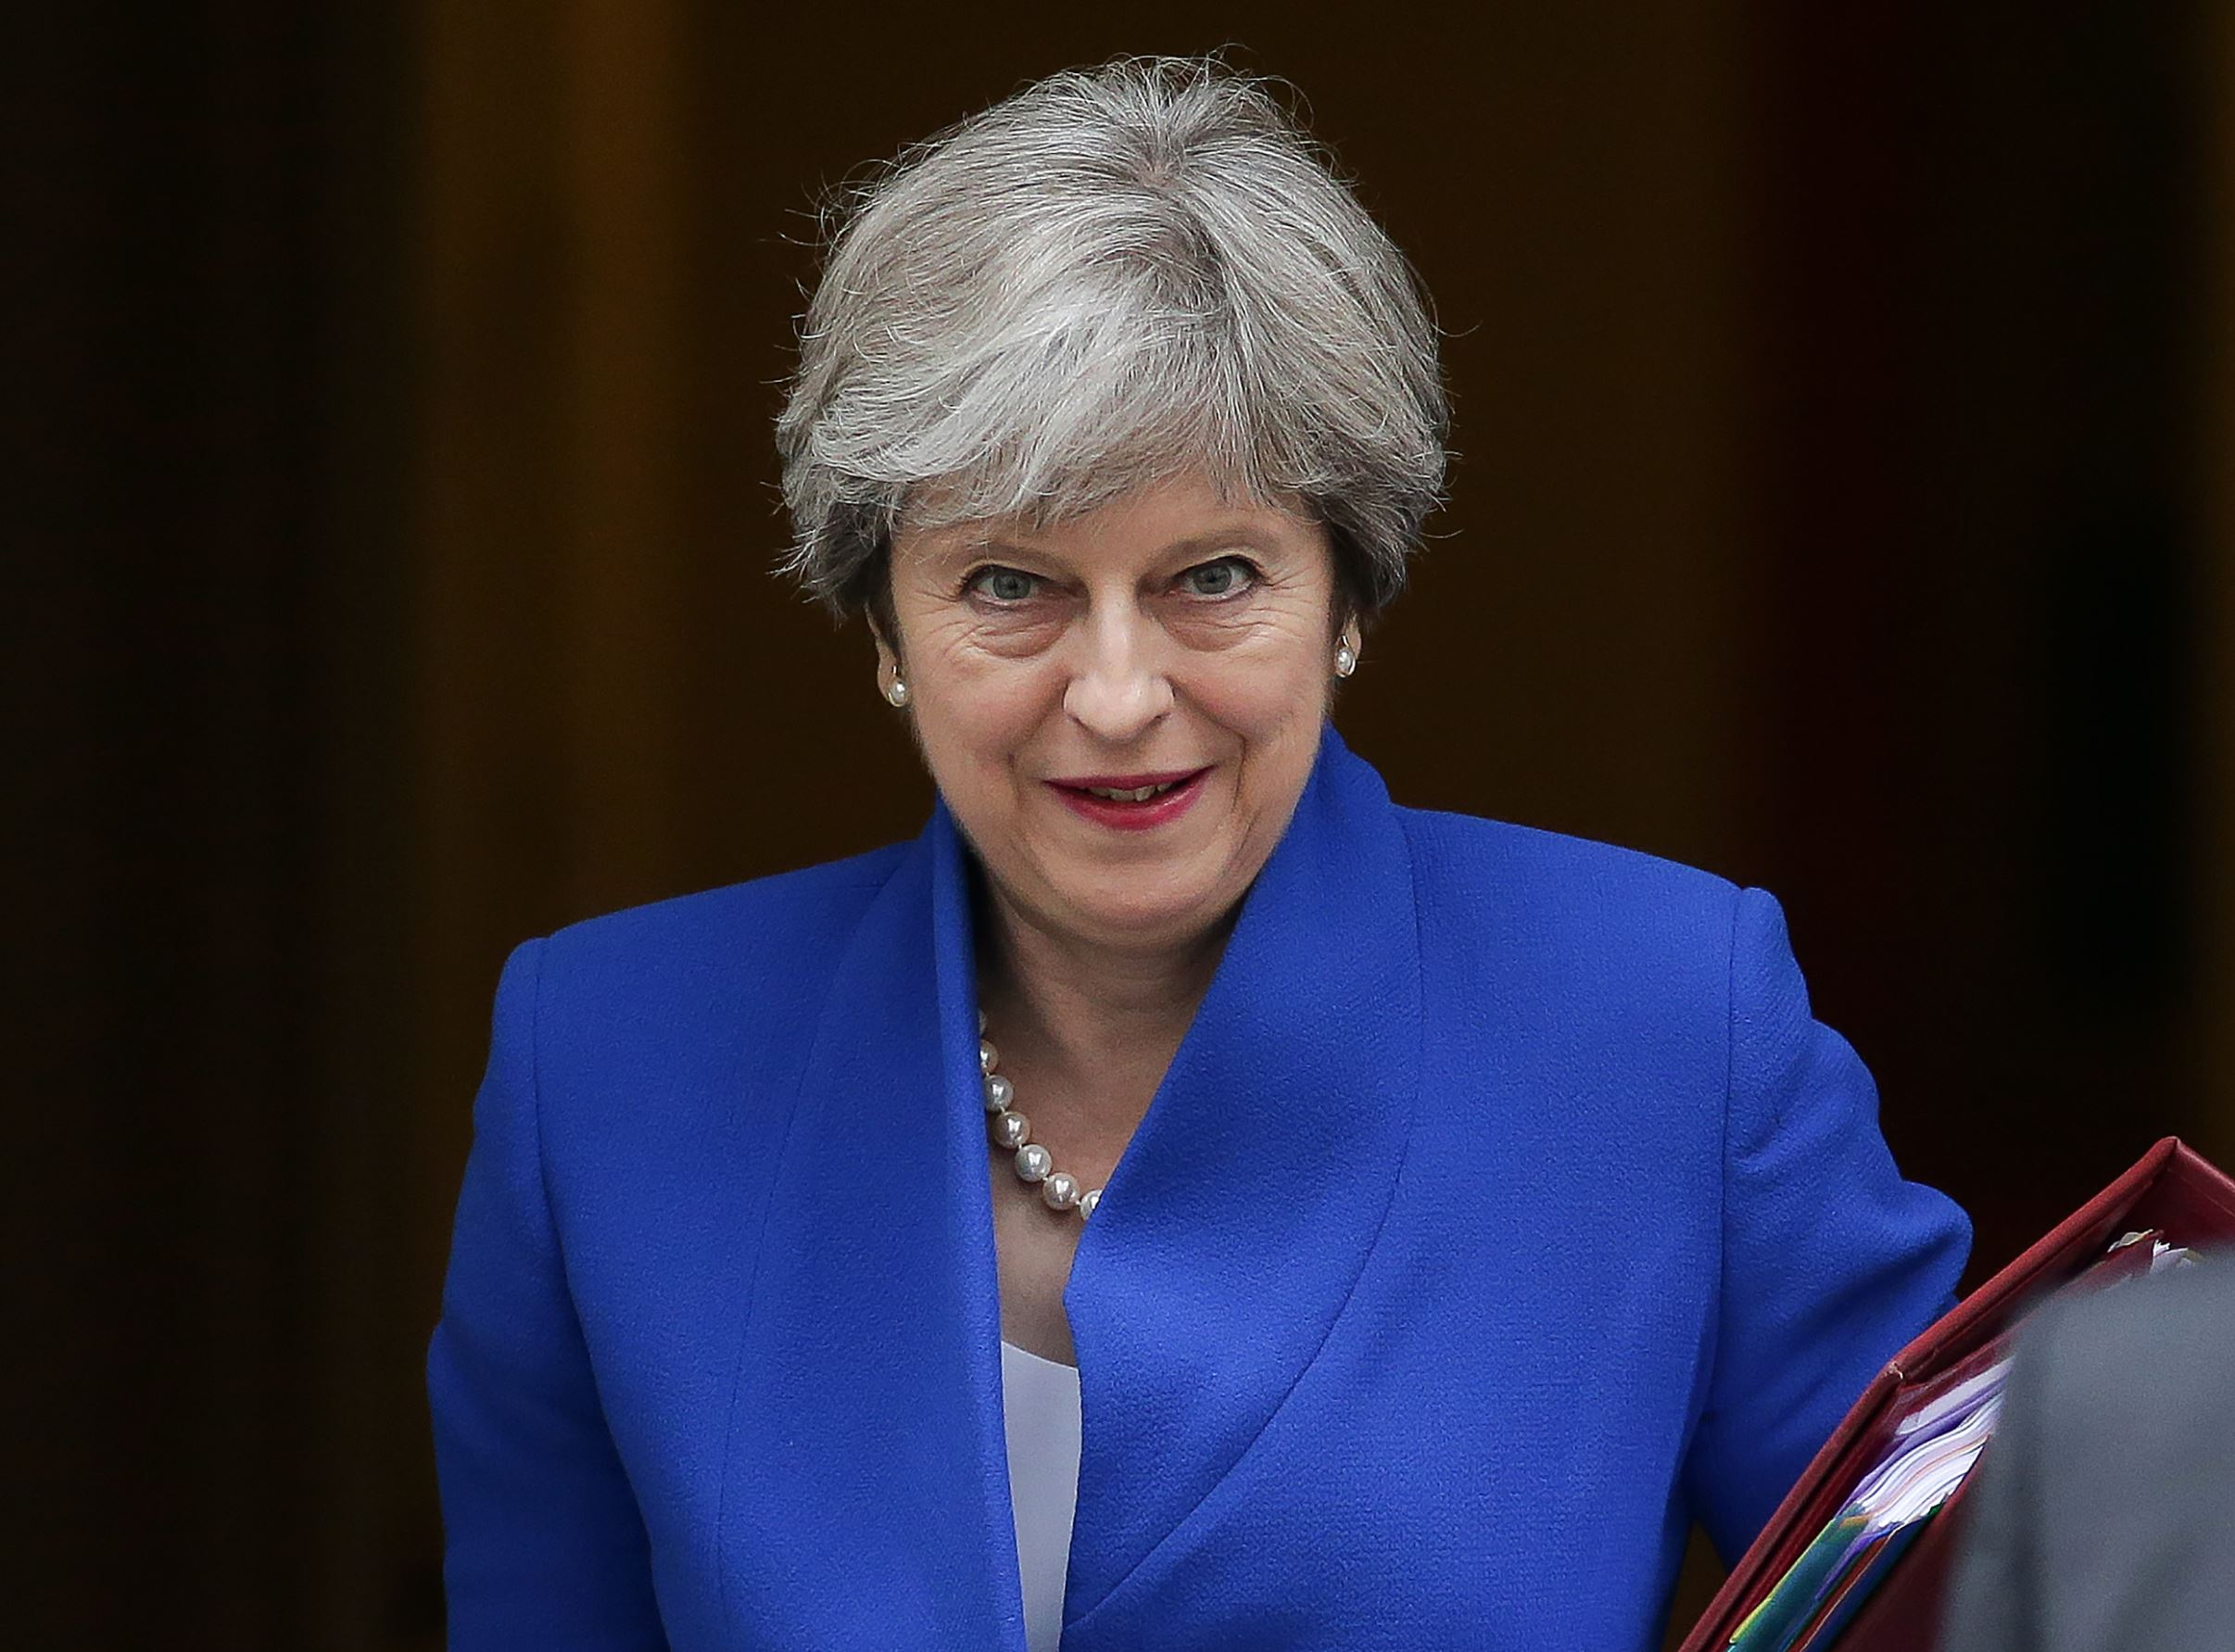 Britain's Prime Minister Theresa May leaves 10 Downing Street in central London on July 19, 2017, on her way to the Houses of Parliament to speak at Prime Minister's Questions